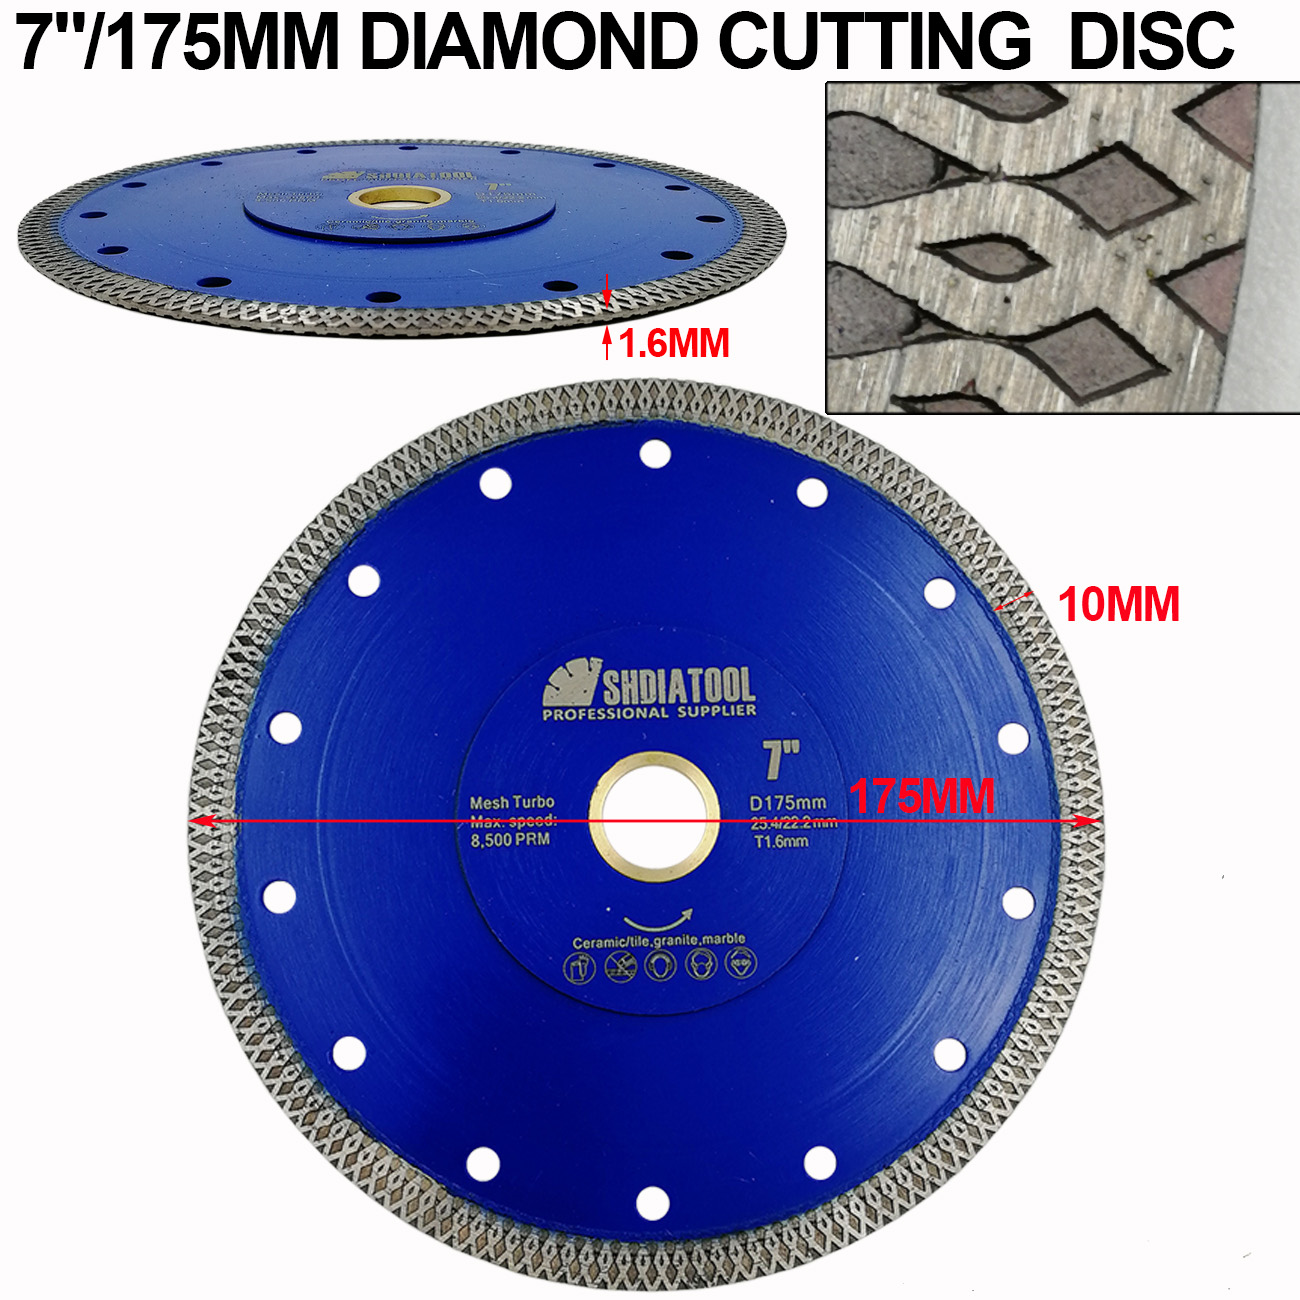 "Купить с кэшбэком SHDIATOOL 2pcs Diamond Cutting Disc X Mesh Turbo Rim Segment Dia 4"" 4.5"" 5"" 7"" 8"" 9"" 10"" Diamond Saw Blade Cutting Marble Tile"